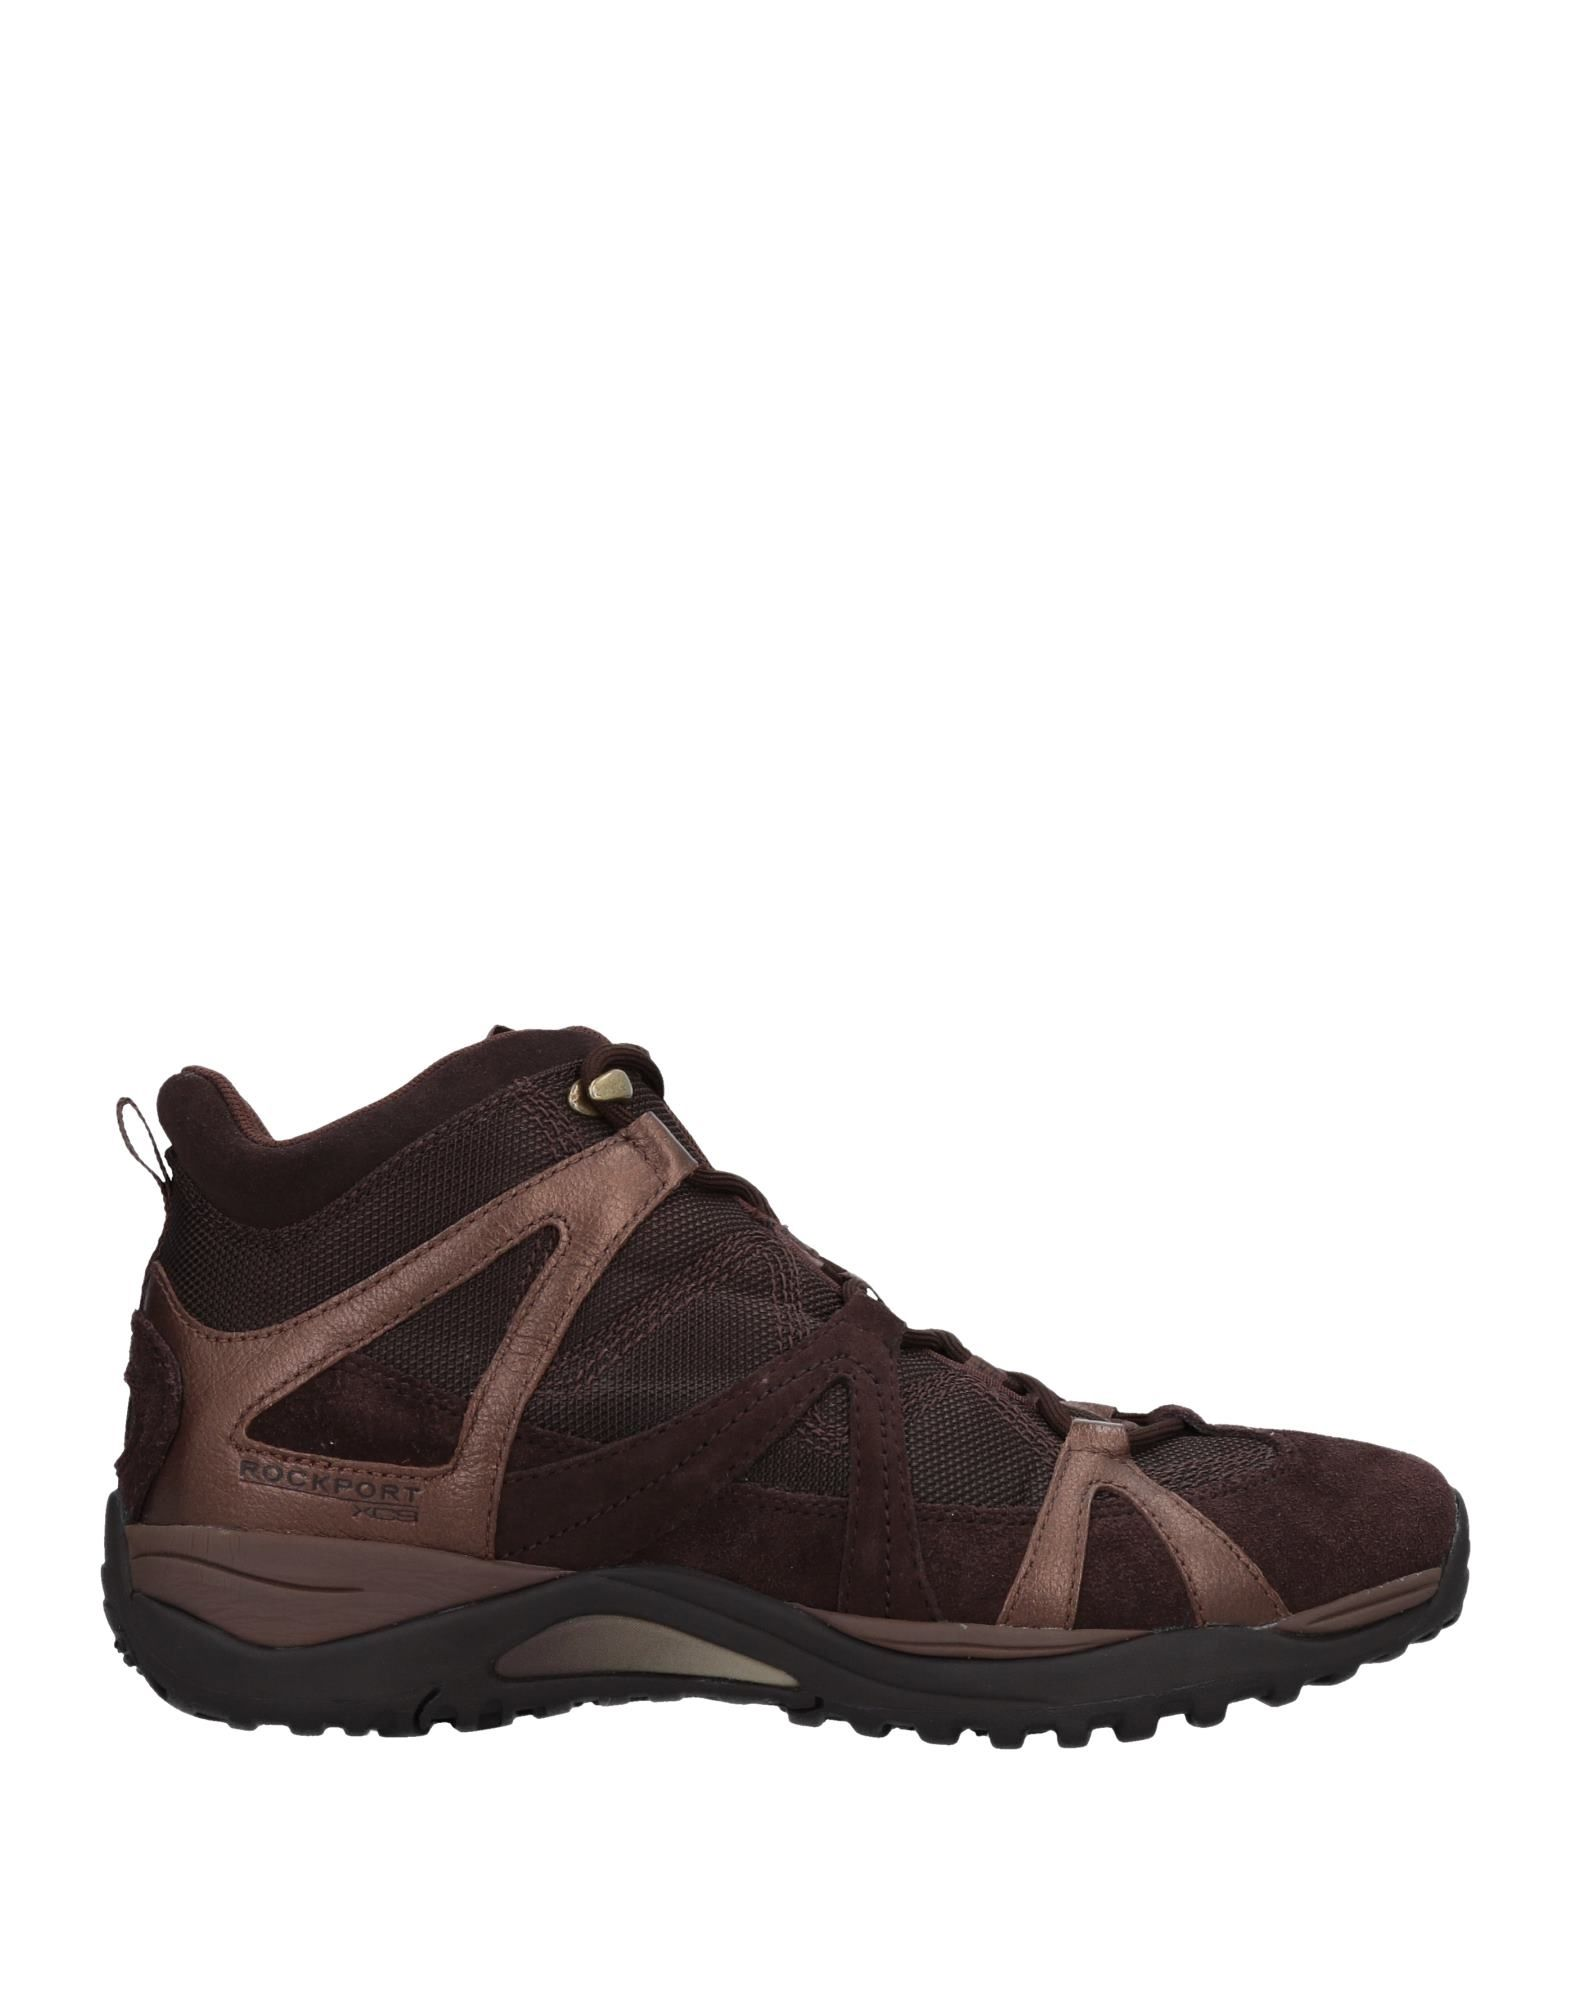 Moda Sneakers Rockport Donna - - Donna 11511624XL 260601